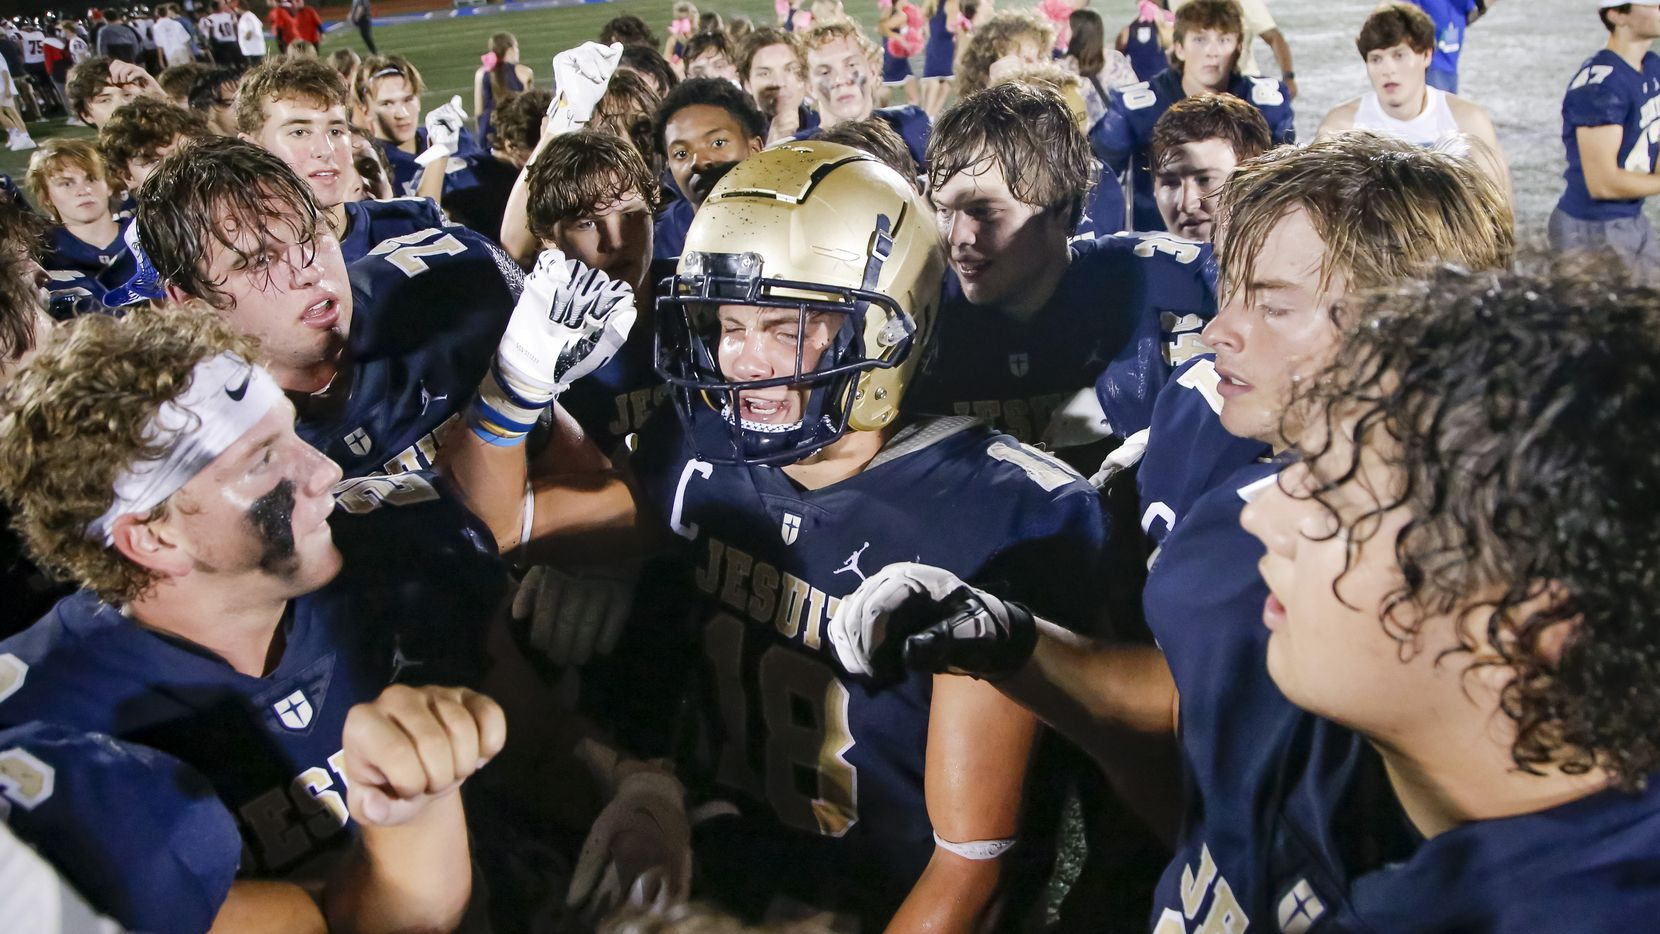 Jesuit senior running back Robert Fitzgerald, center, and his teammates celebrate a 48-45 win over Lake Highlands after a high school football game at Jesuit College Preparatory School of Dallas, Friday, October 1, 2021. (Brandon Wade/Special Contributor)